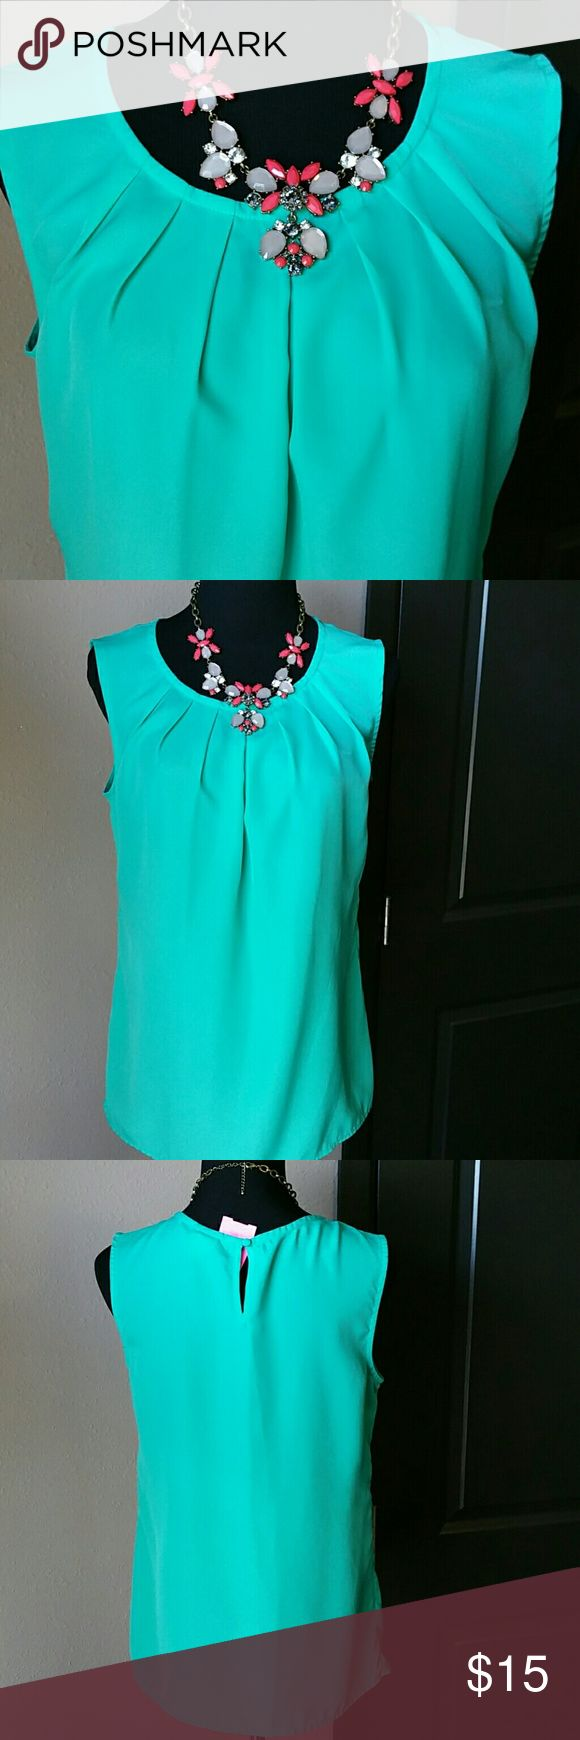 Teal Blouse Teal Blouse, great for spring summer! Merona Tops Blouses